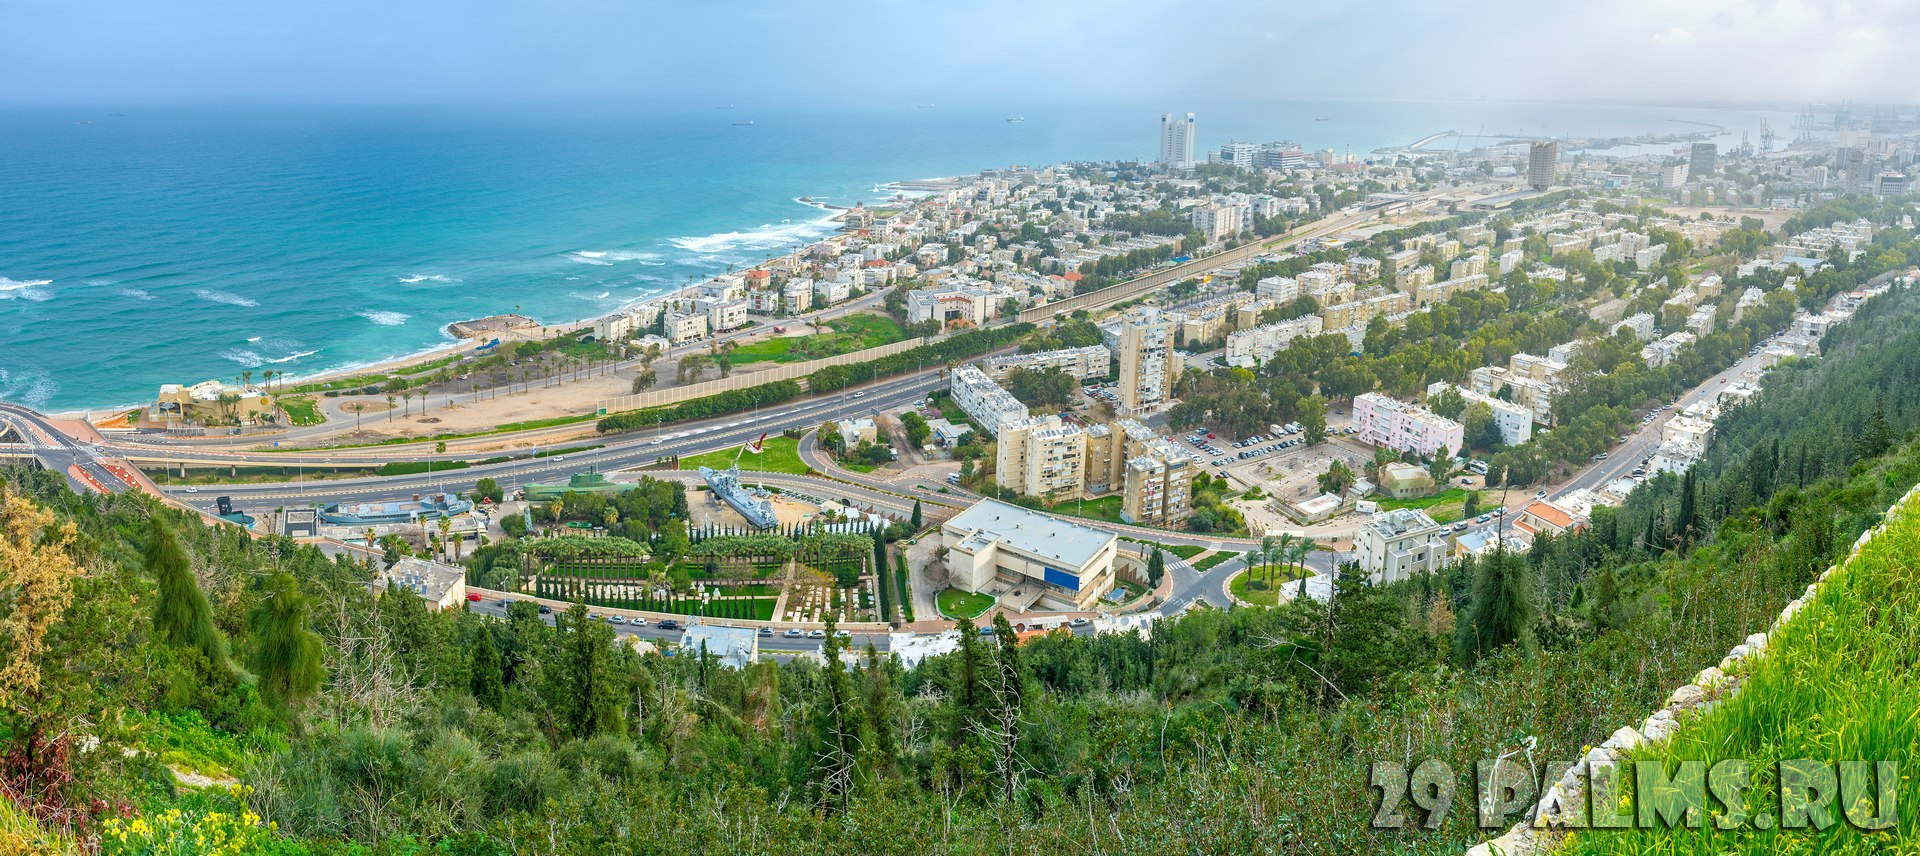 Израиль. Панорама Хайфы. Haifa from the slope of Carmel Mount, overlooking residential districts, beaches and the coastline, Israel. Фото efesenko - Depositphoto